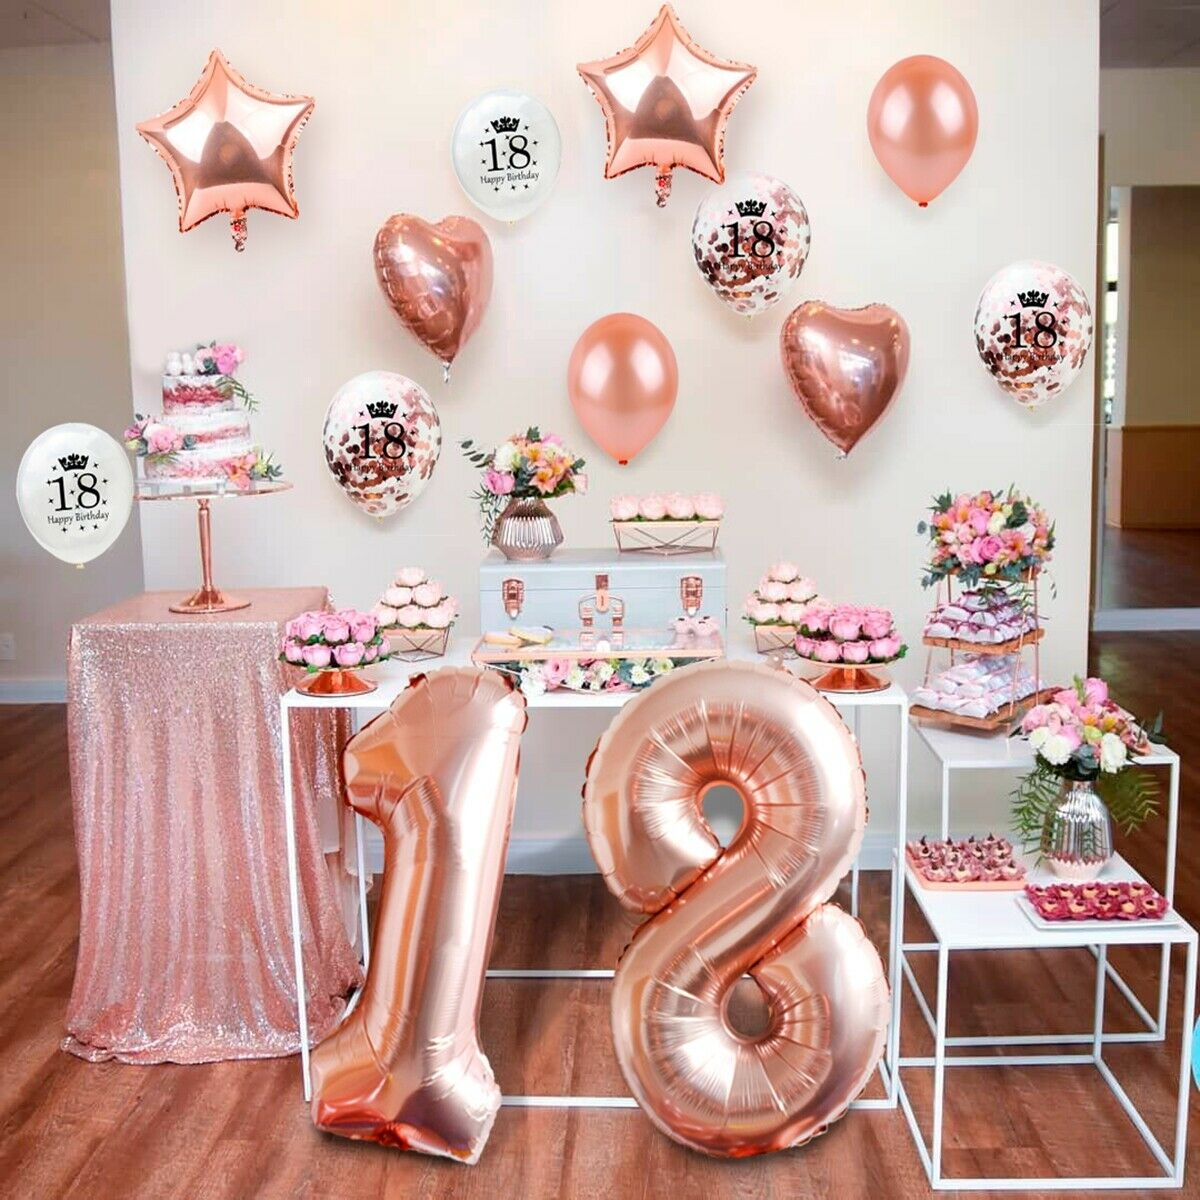 Rose Gold Foil Latex Balloon Ribbon 18th Birthday Party Decor Supplies Set